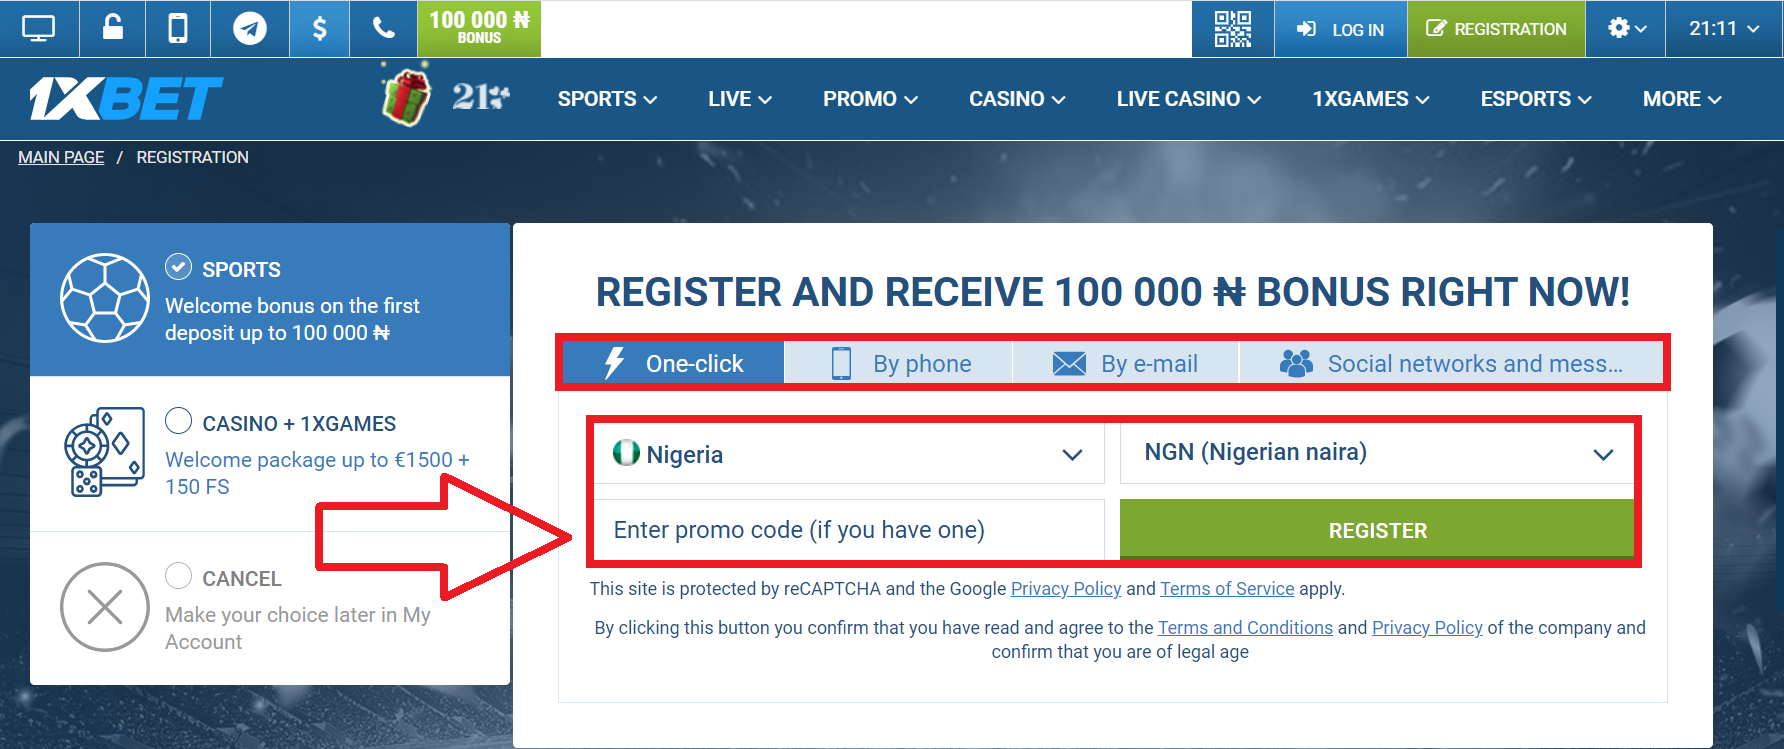 Rules of the 1xBet registration process